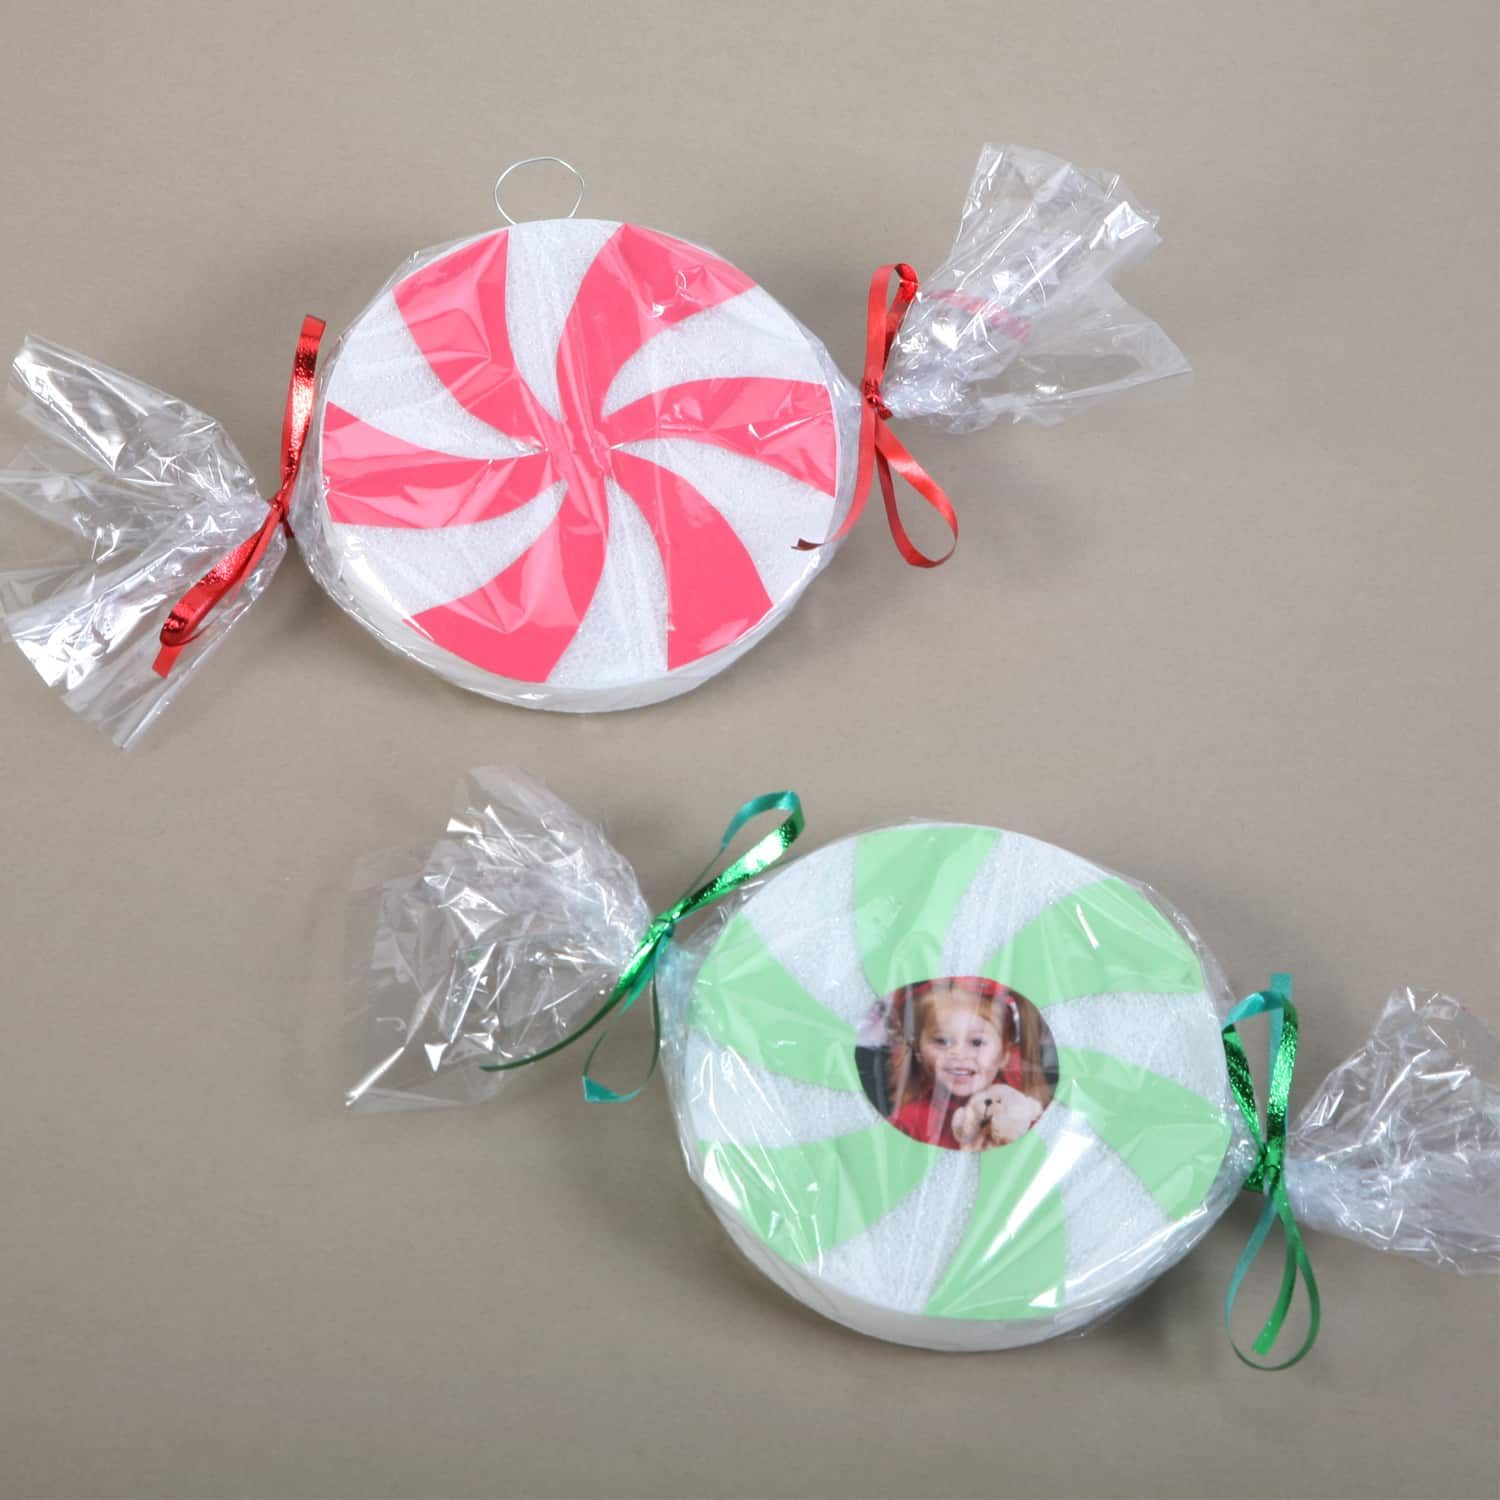 Dollartree Com Christmas Craft Idea Candy Swirl Ornaments